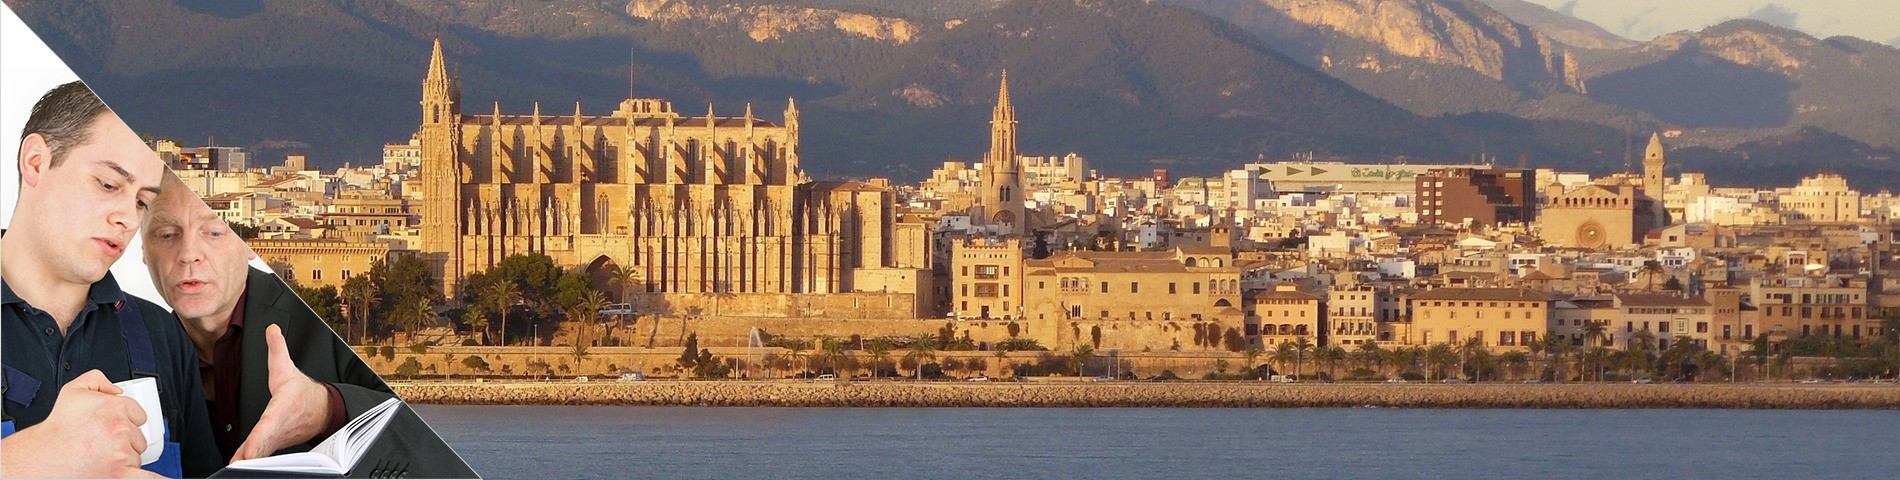 Palma de Majorque - One-to-one